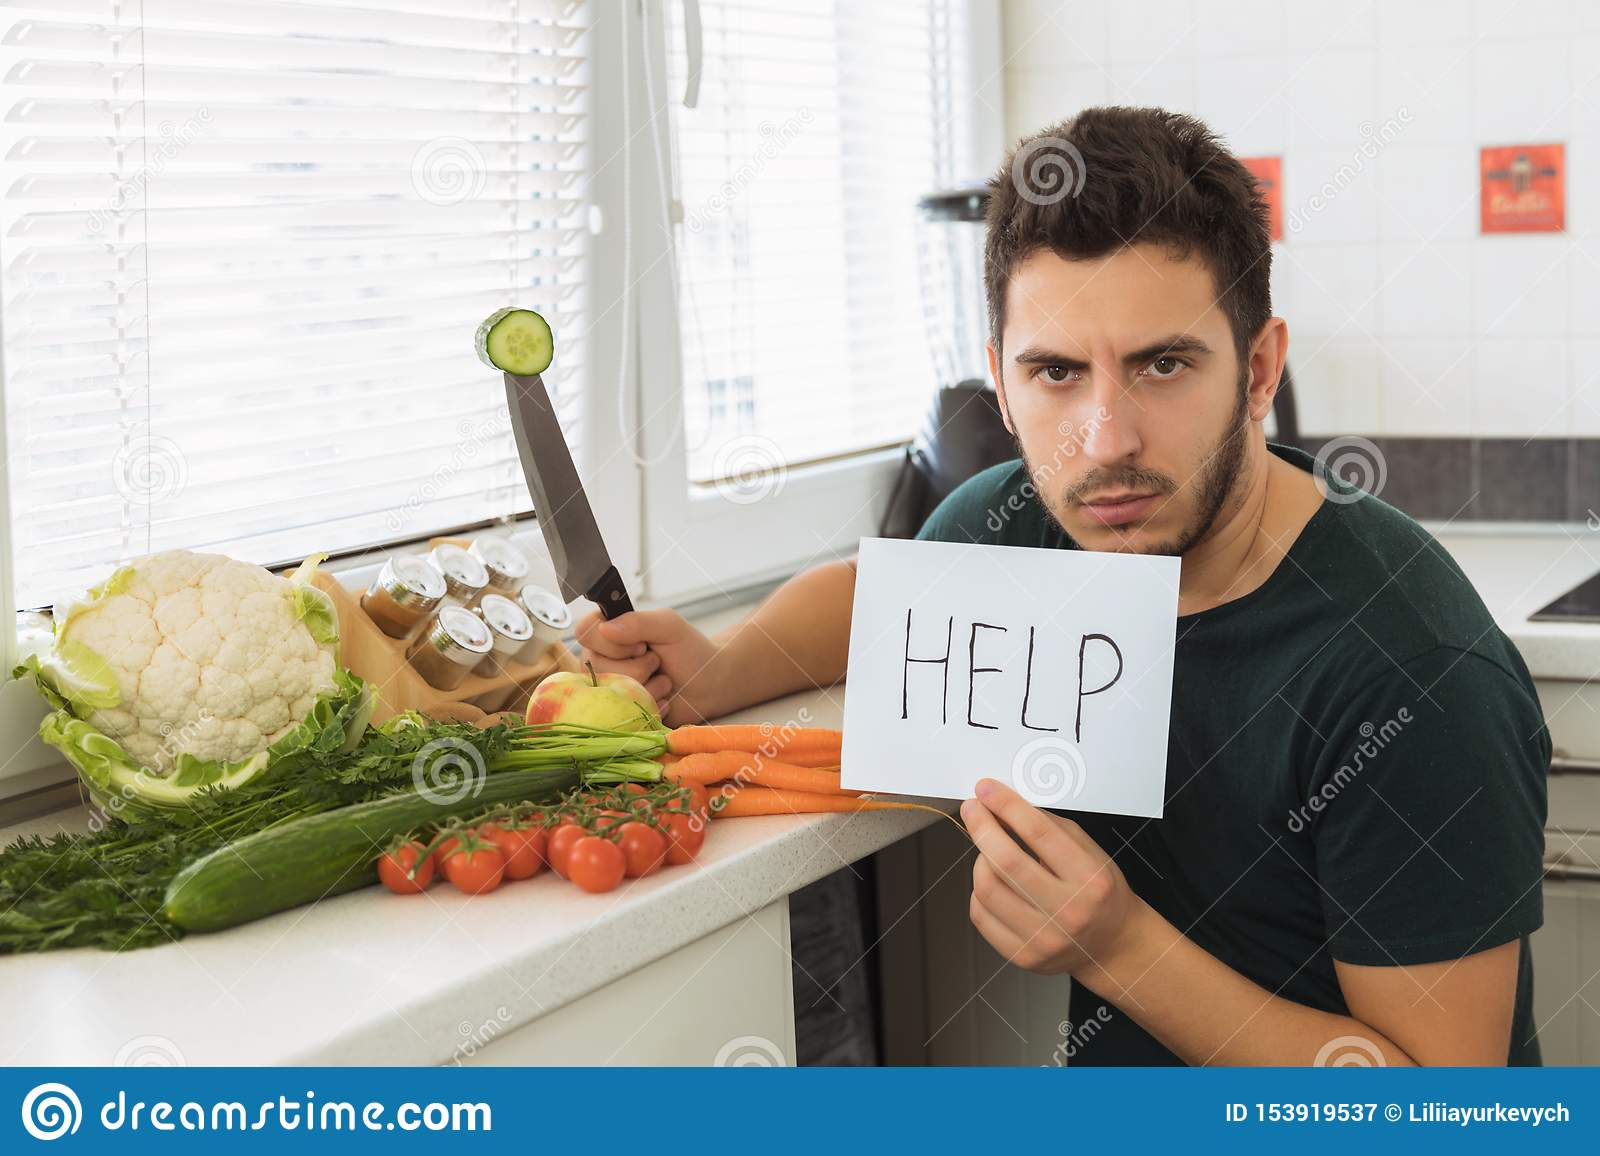 A young handsome man sits in the kitchen with an angry face and asks for help.